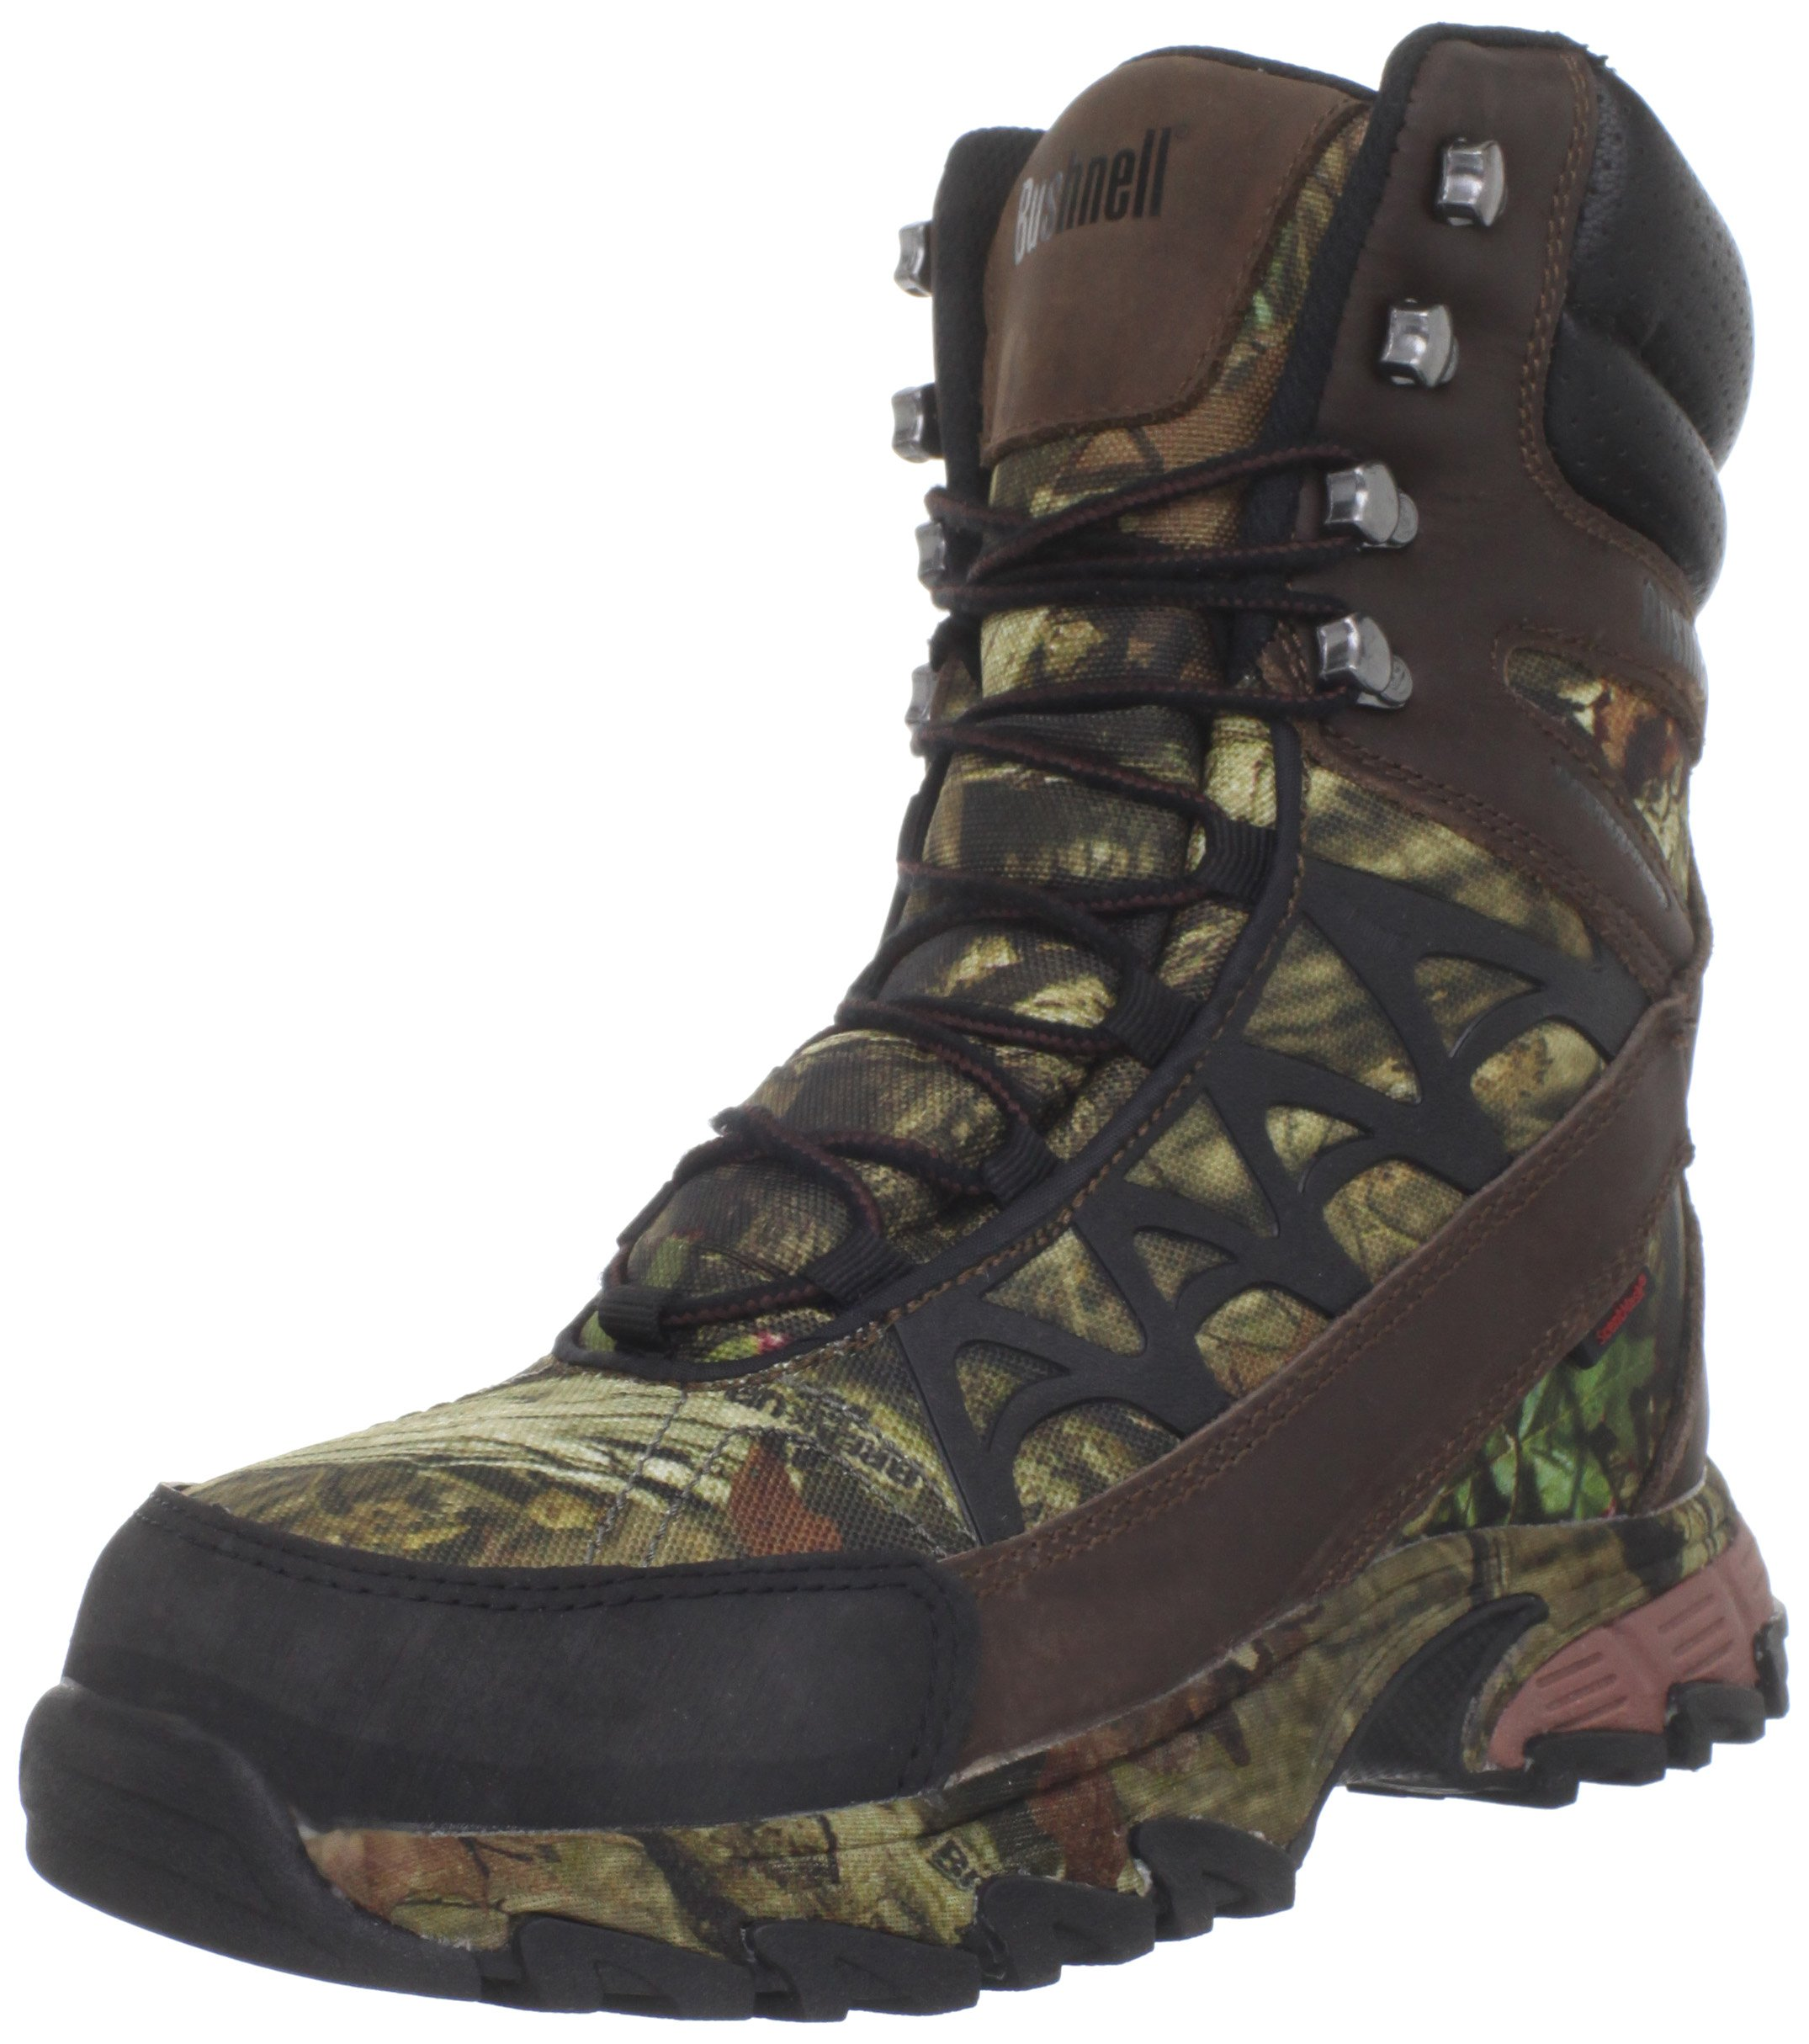 Bushnell Women's Mountaineer Hunting Boot,Mossy Oak,5 M US by Bushnell